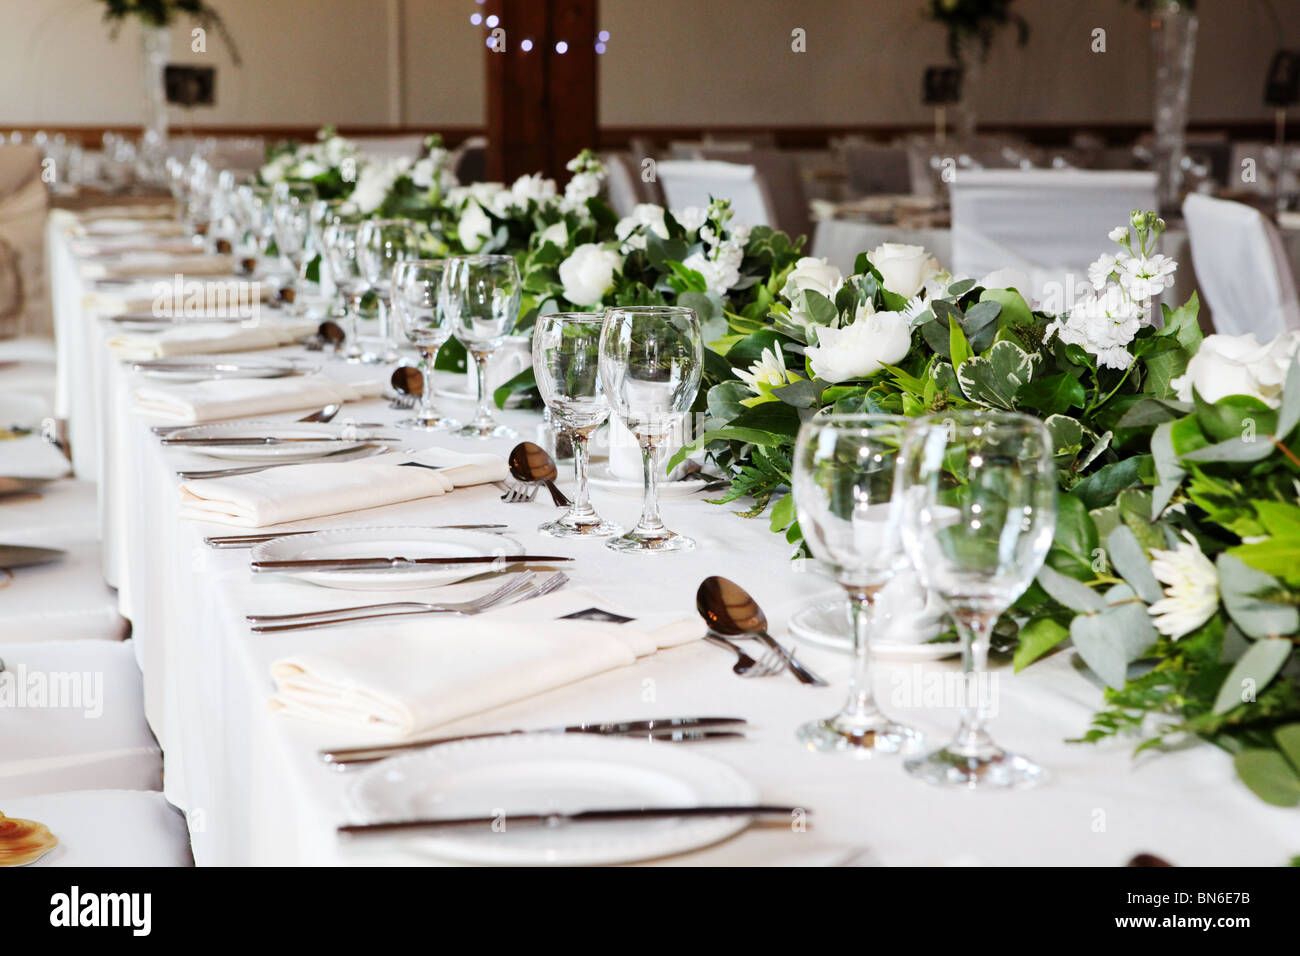 wedding flowers wedding breakfast reception top table laid up and decorated with flowers for a wedding day meal